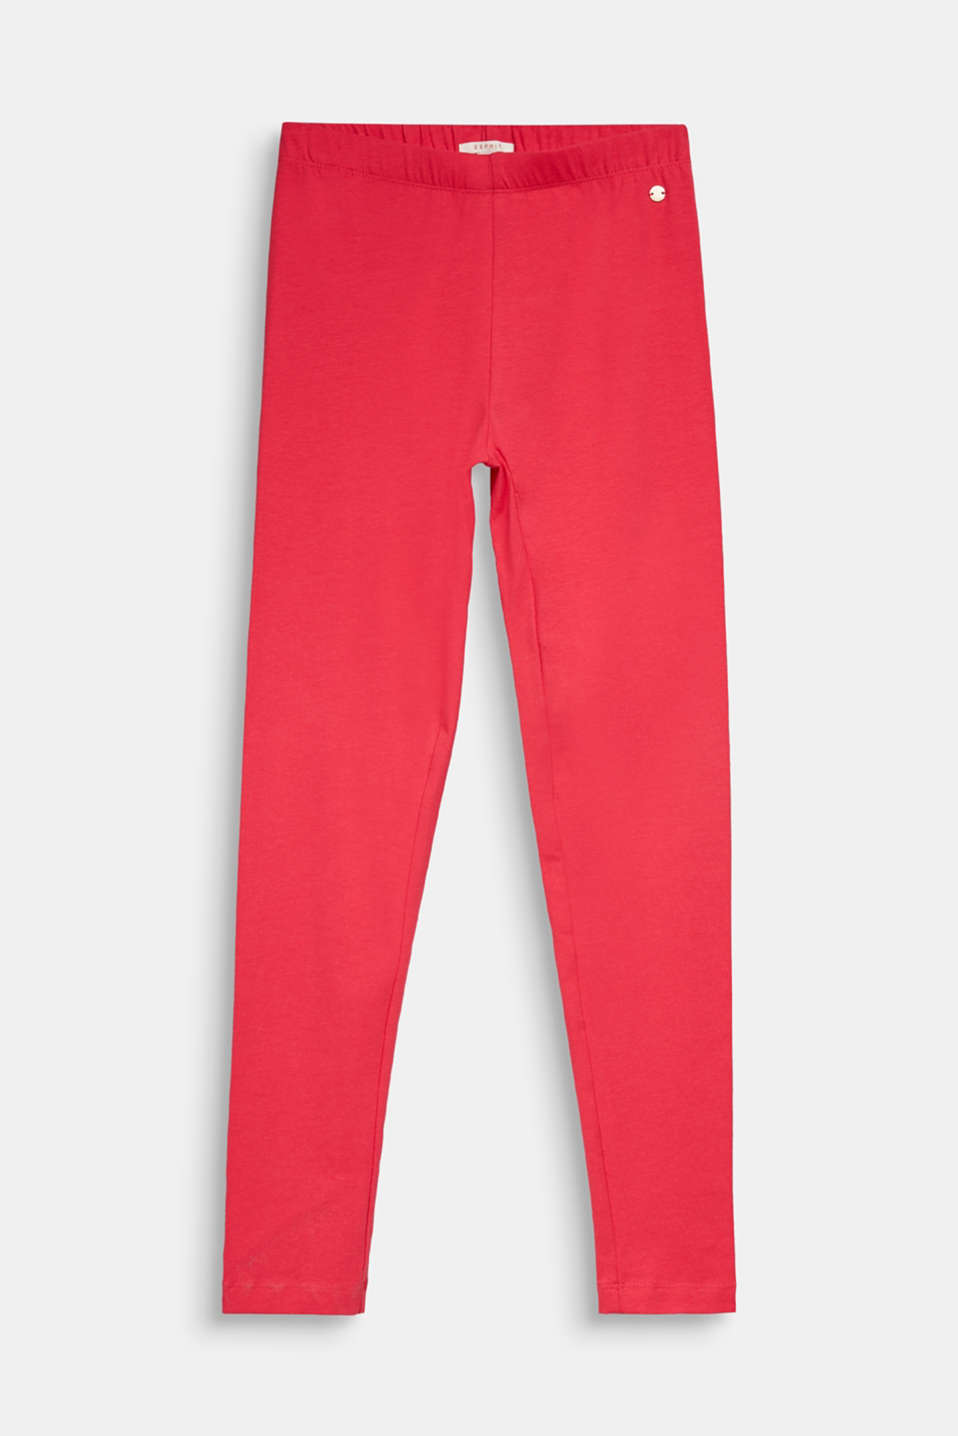 Leggings made of 100% cotton, LCRASPBERRY, detail image number 0